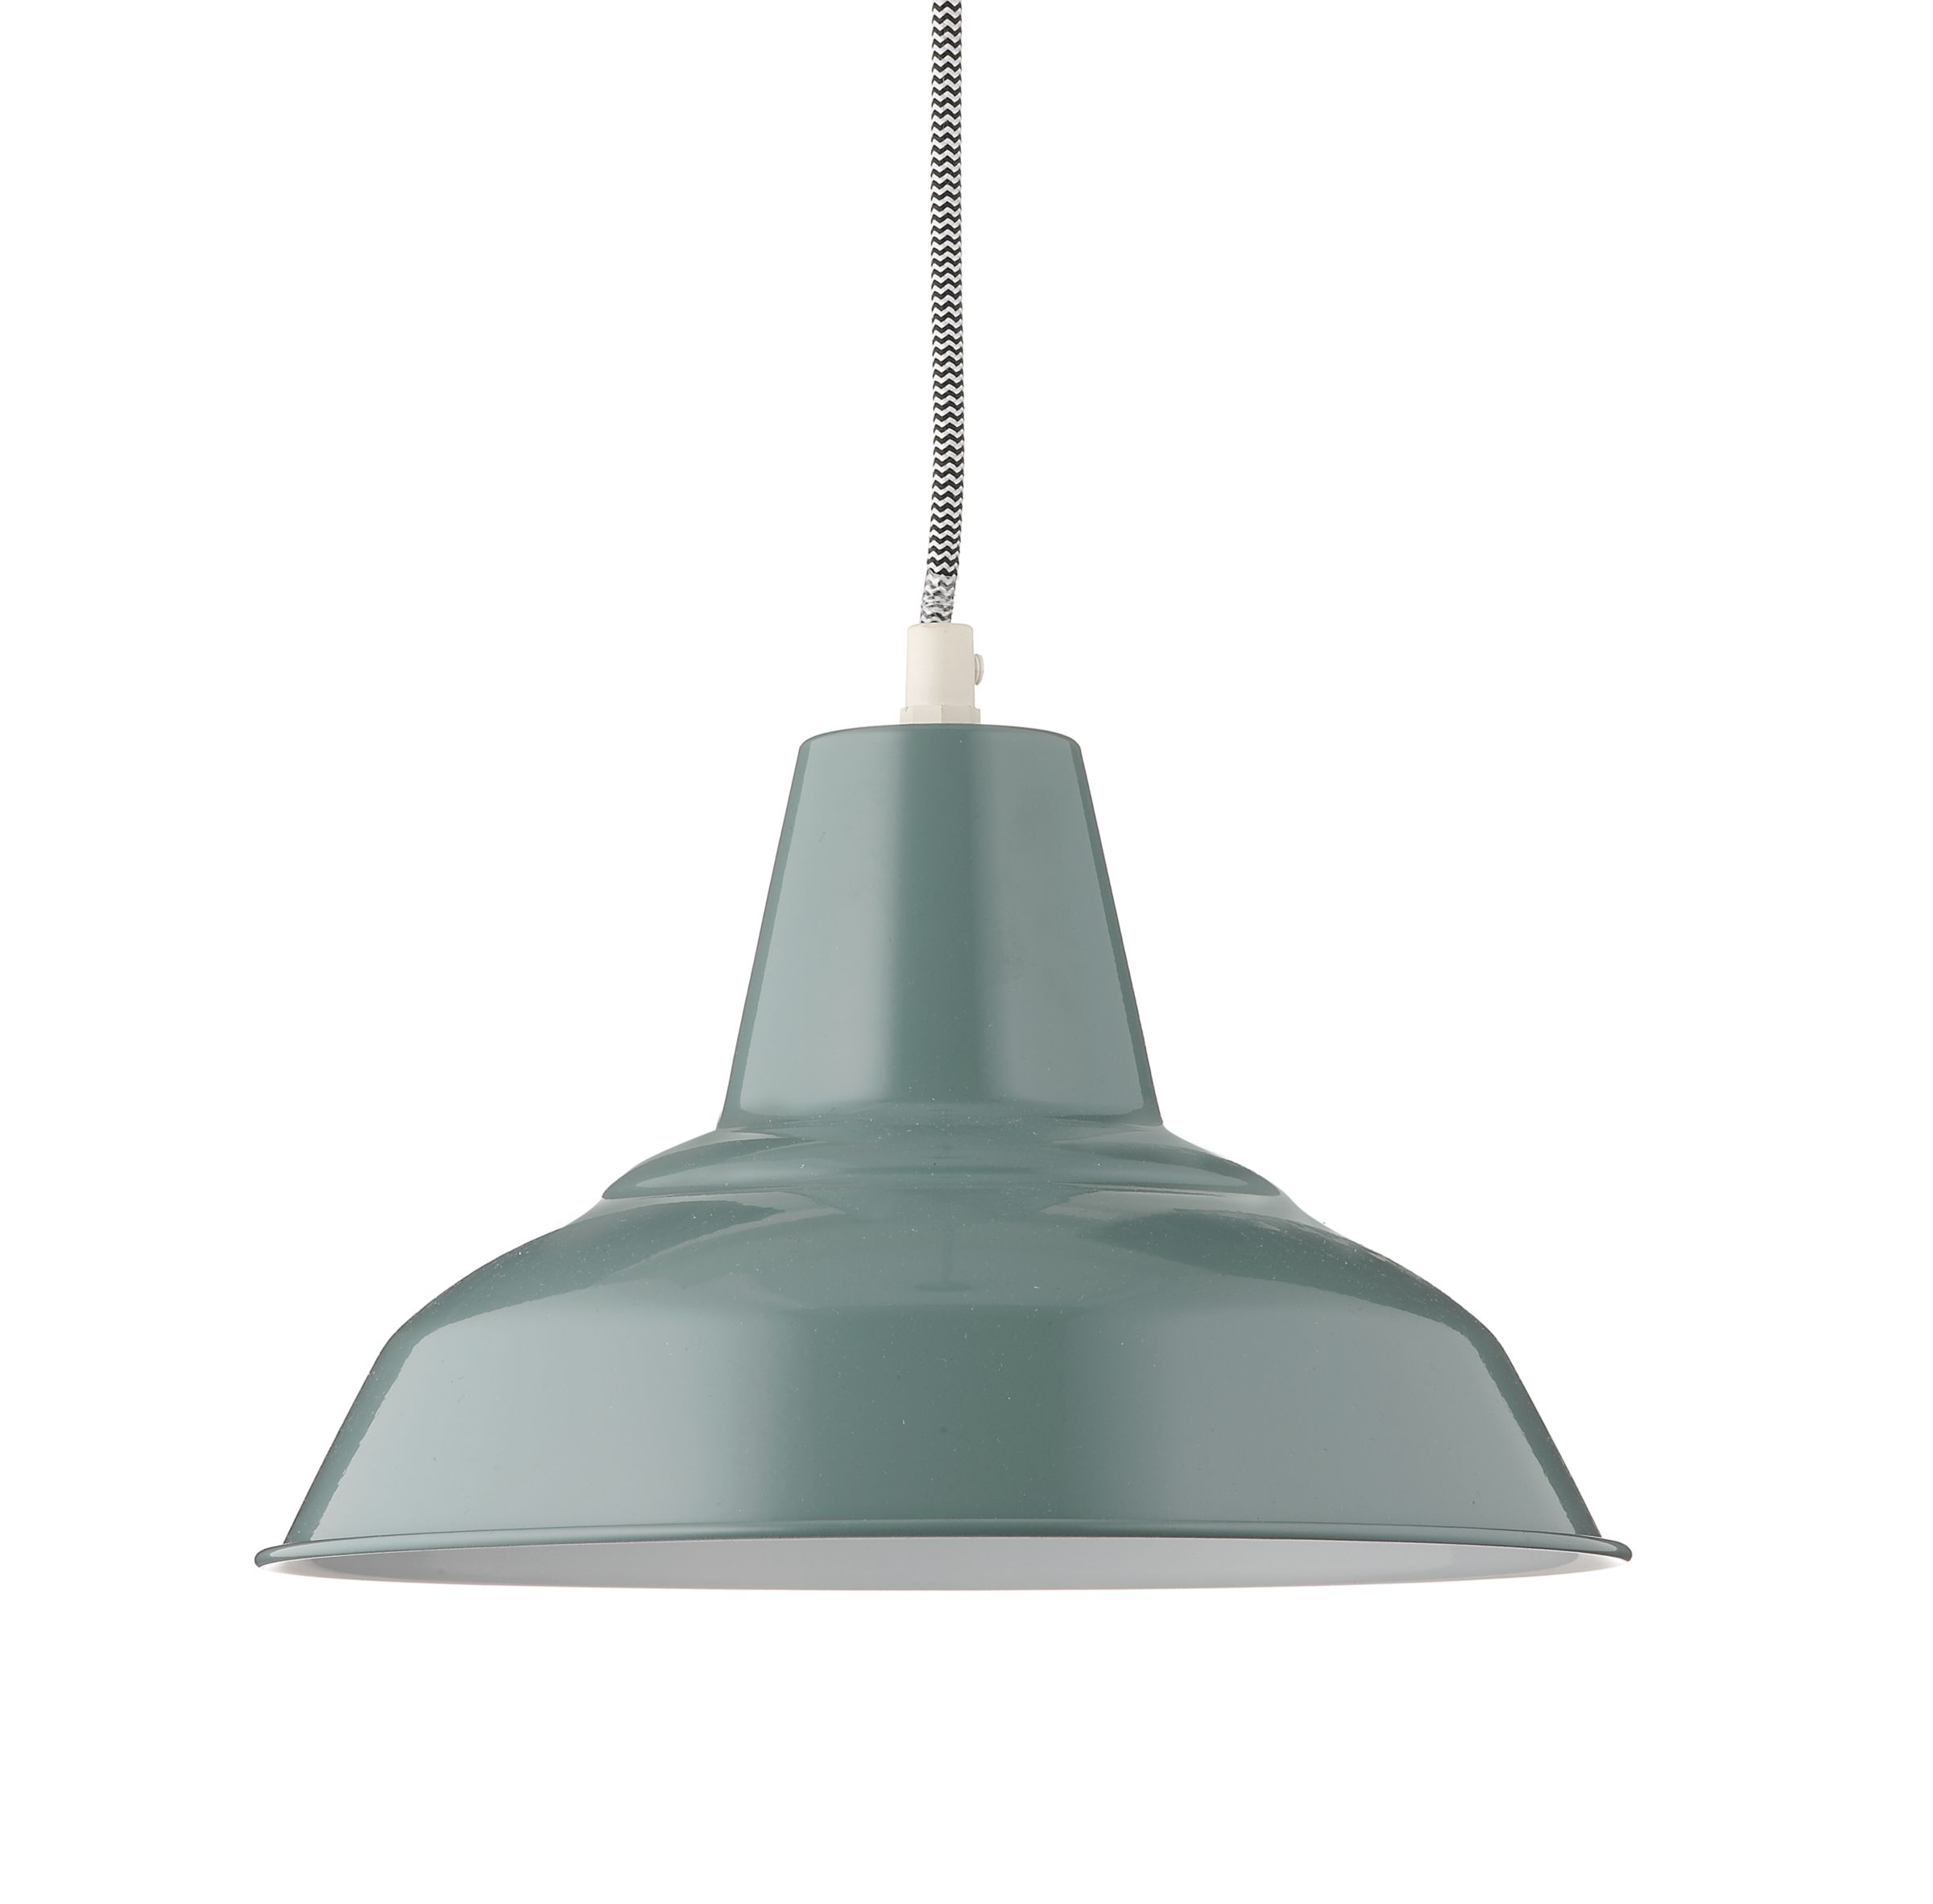 John Lewis White Ceiling Lights : John lewis penelope ceiling light slate review compare